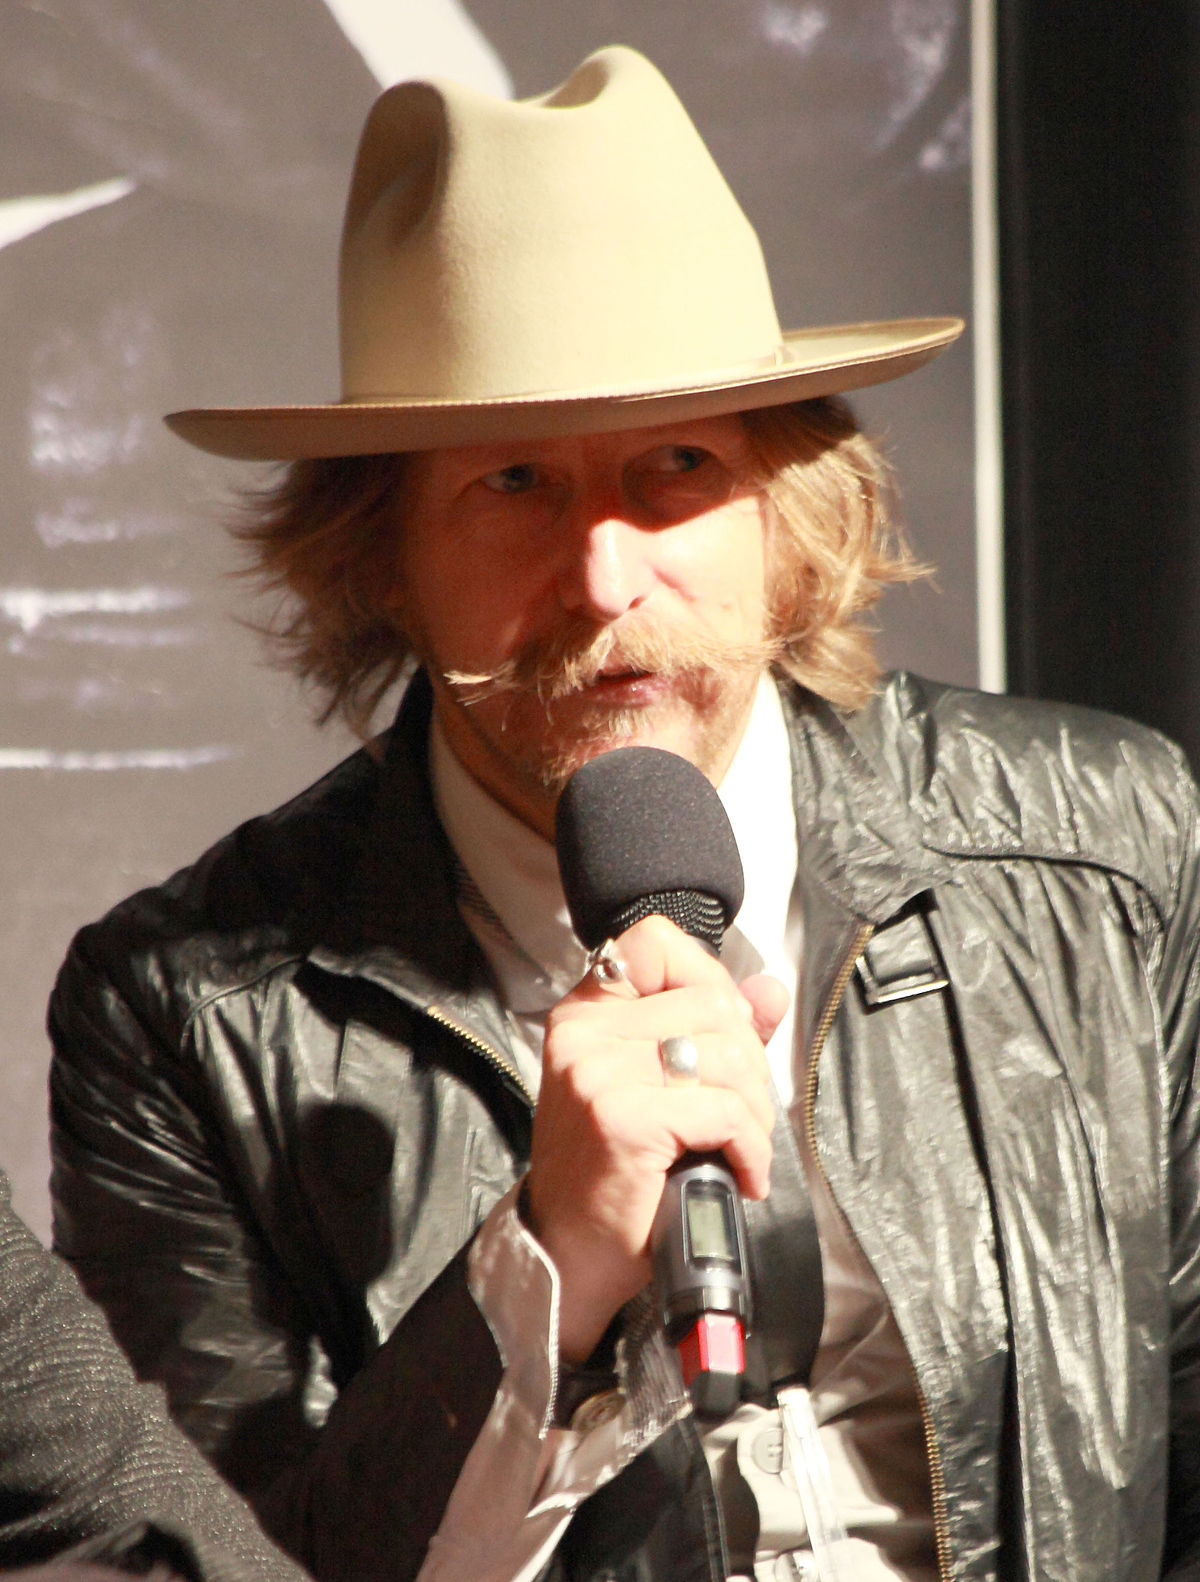 lew temple baseballlew temple imdb, lew temple movies, lew temple halloween, lew temple net worth, lew temple twd, lew temple unstoppable, lew temple baseball, lew temple twitter, lew temple longmire, lew temple actor, lew temple devils rejects, lew temple the walking dead, lew temple criminal minds, lew temple facebook, lew temple 31, lew temple height, lew temple bio, lew temple walking dead interview, lew temple fried green tomatoes, lew temple movies and tv shows